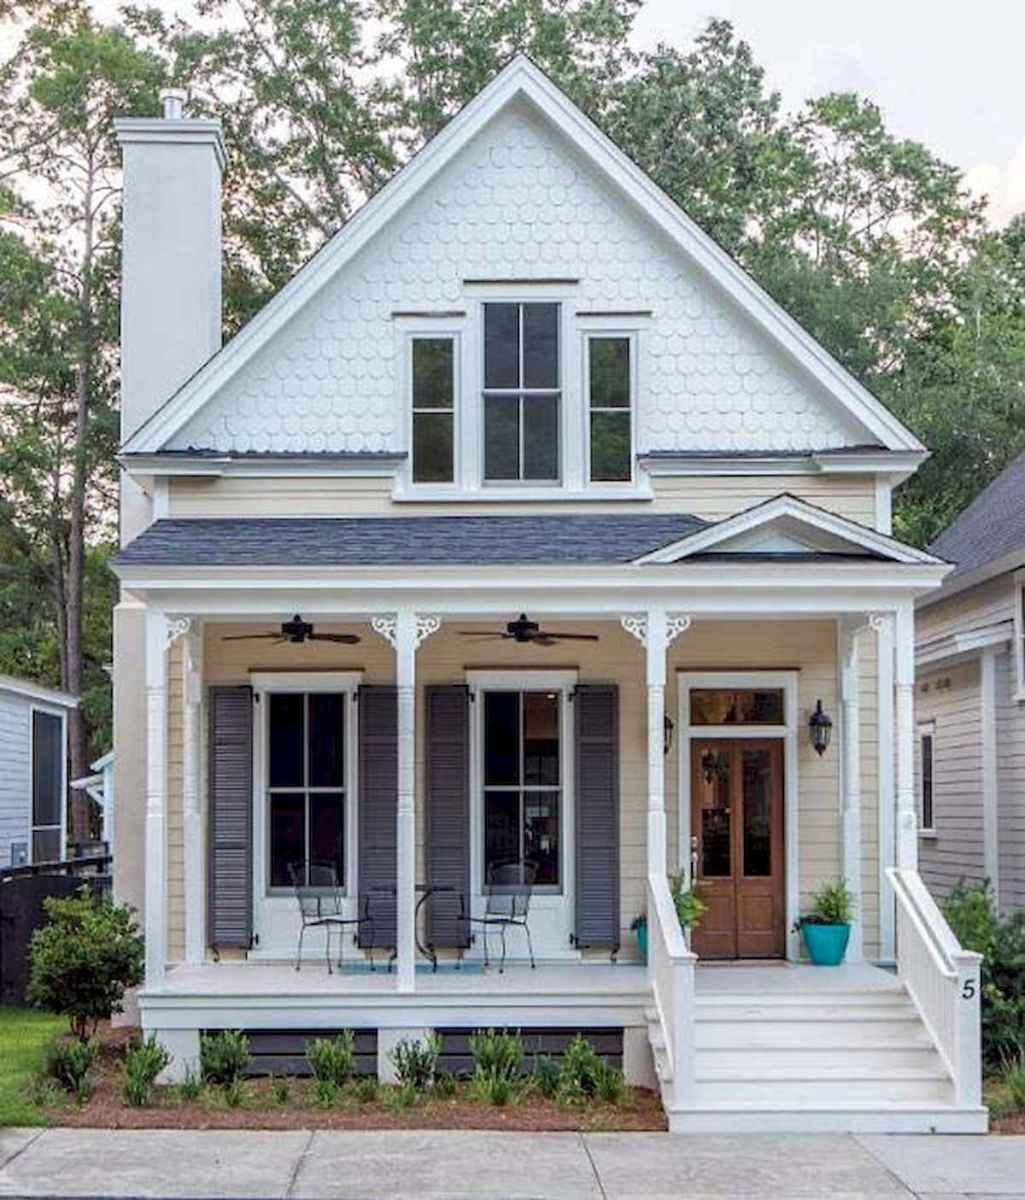 60 Beautiful Tiny House Plans Small Cottages Design Ideas (1)